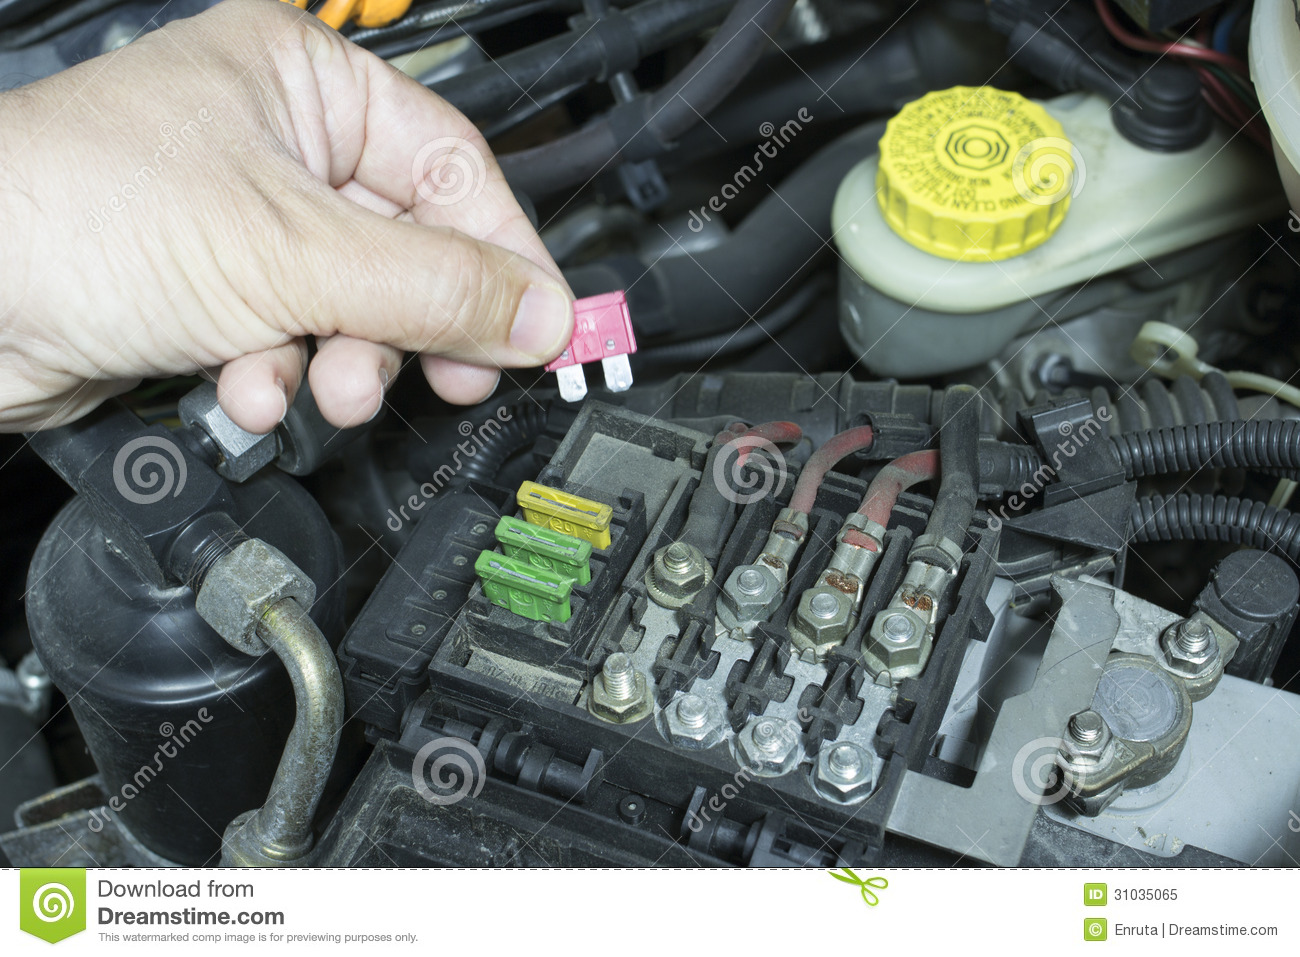 Replacing A Fuse Box In A Car : Fuse box car royalty free stock photo image